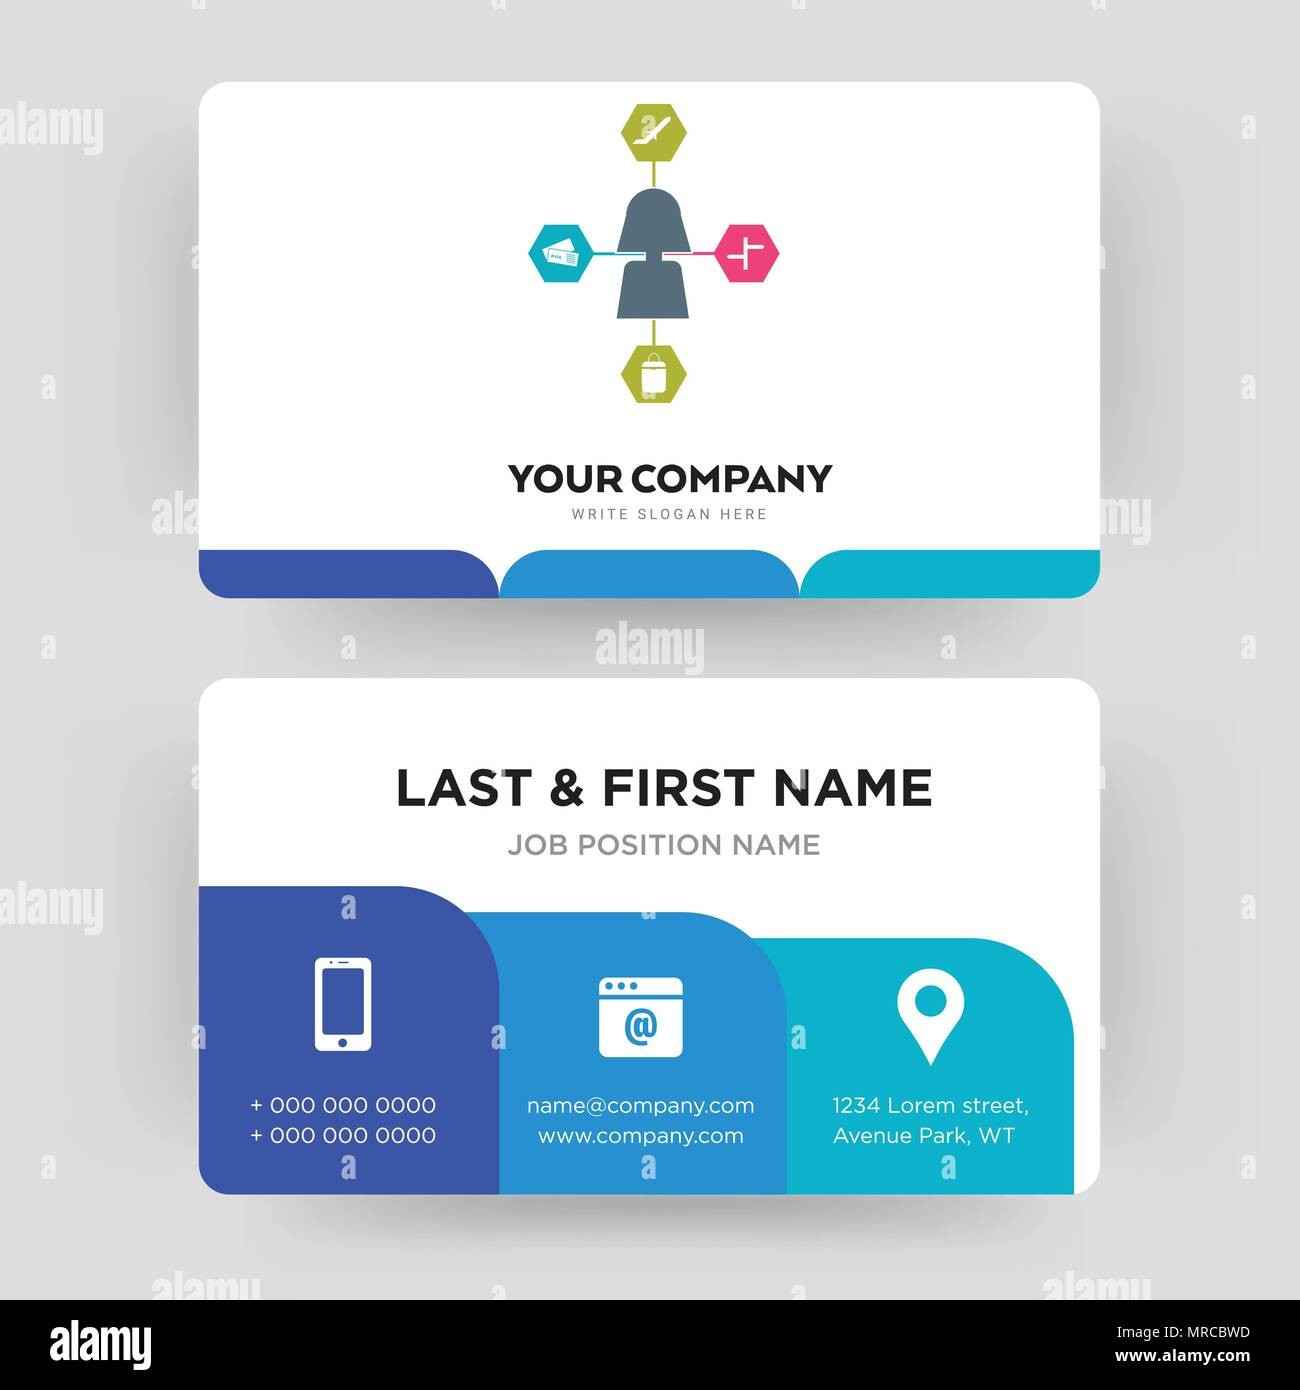 Travel Agent Business Card Design Template Visiting For Your